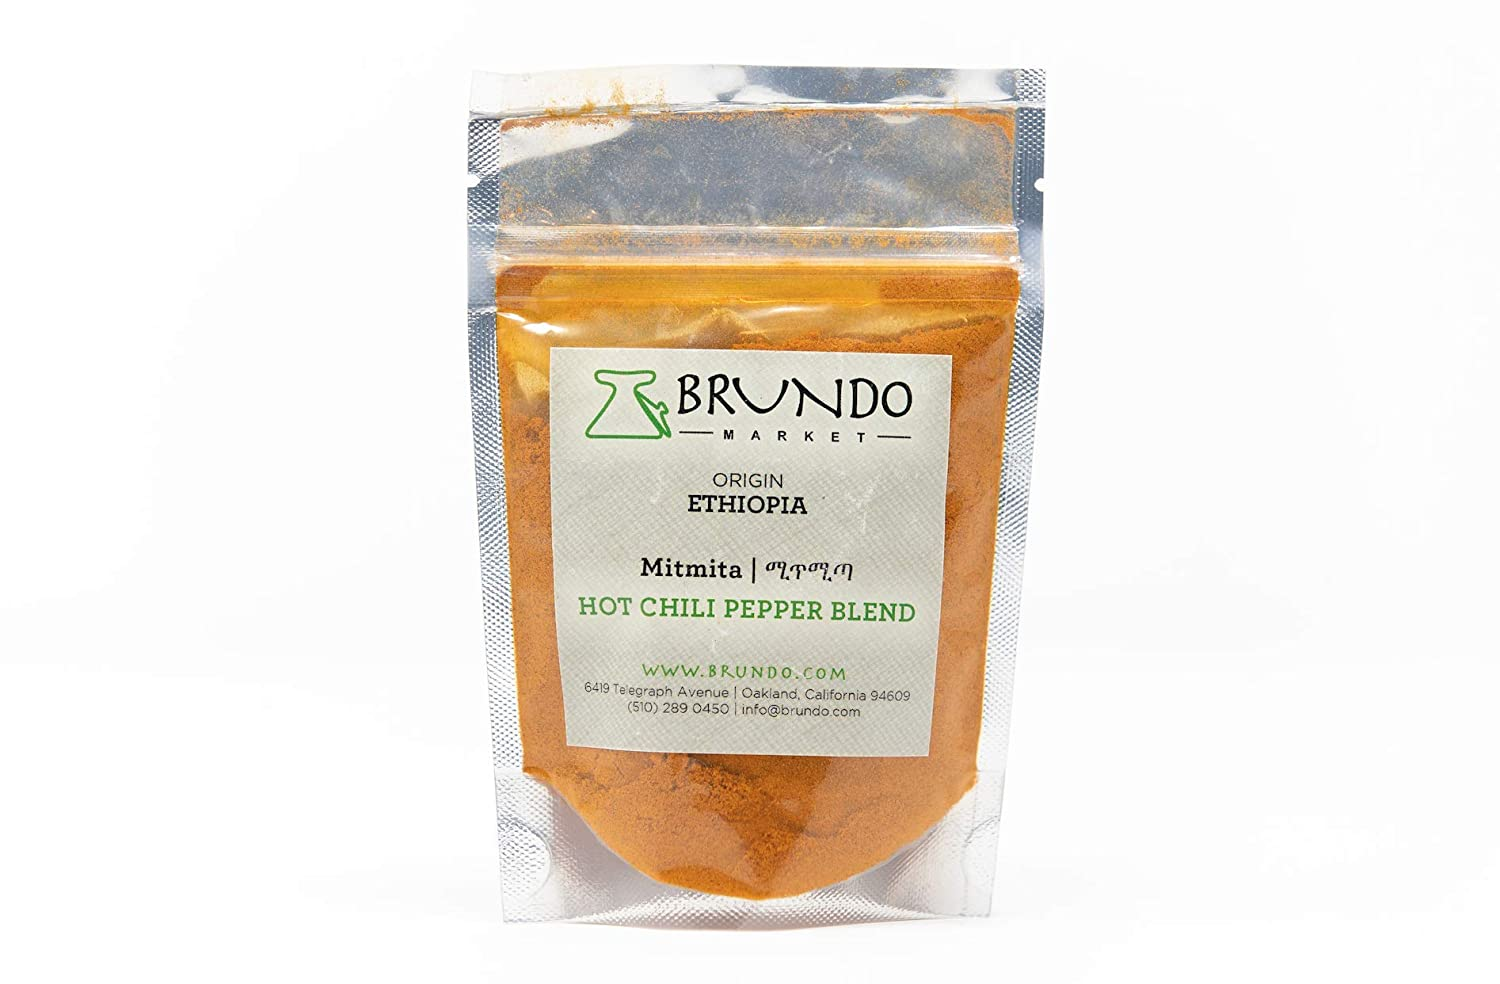 Mitmita   Authentic Ethiopian Spice Blend With Bird's Eye Chili Pepper (2 oz)   NON-GMO   No Preservatives   Made and Imported from Ethiopia